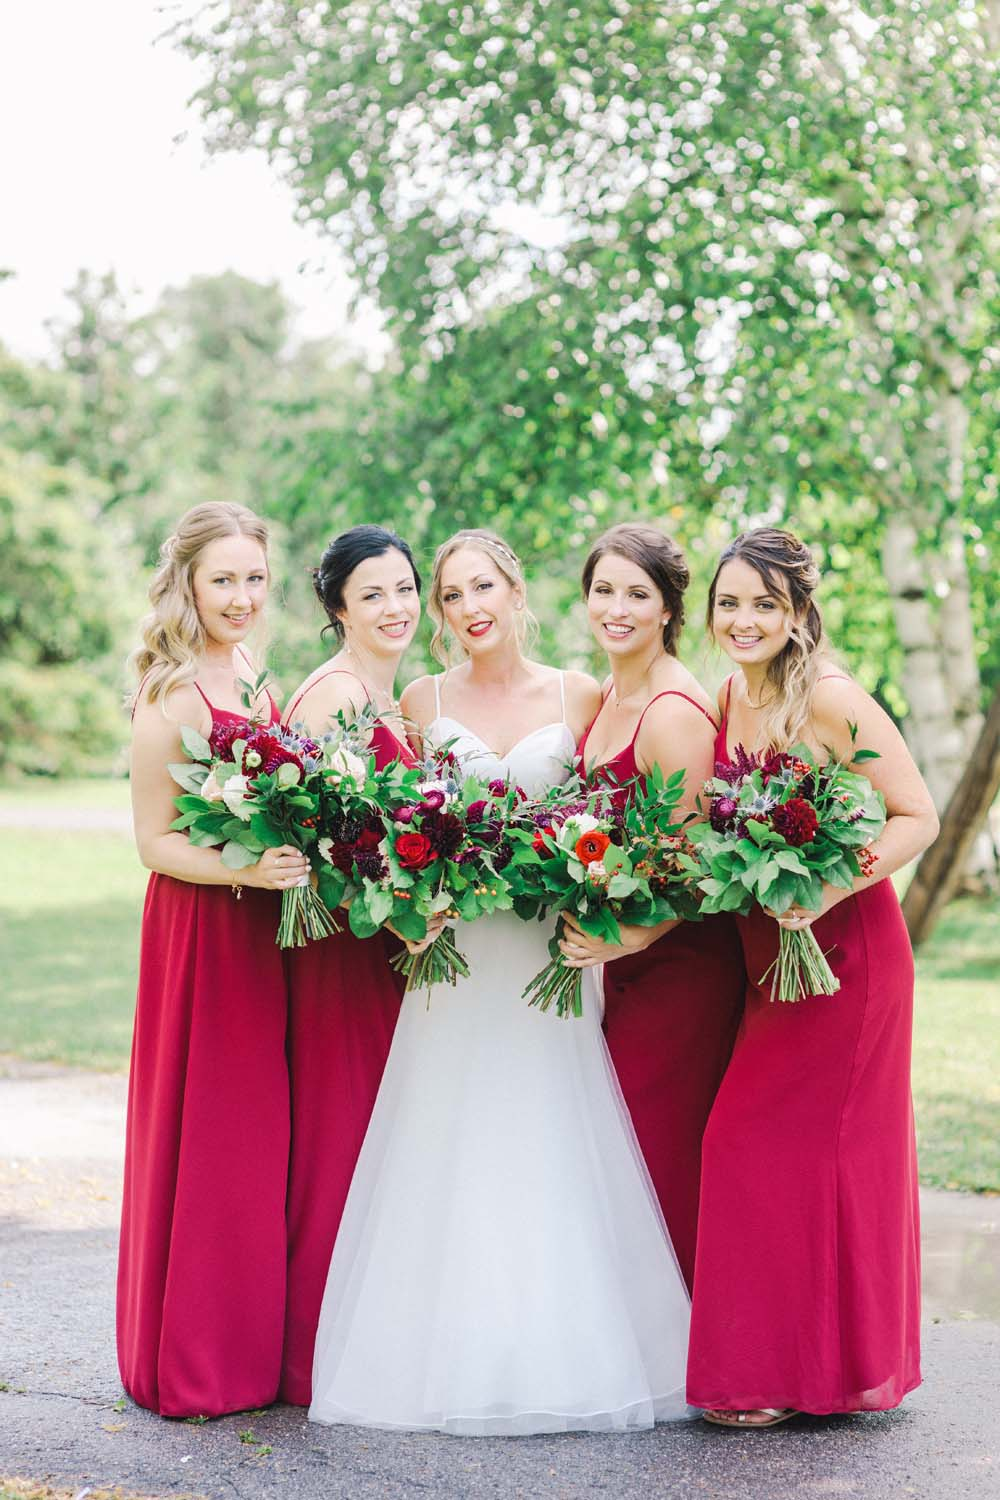 An Enchanting Vineyard Wedding in Ottawa - Bride and bridesmaids